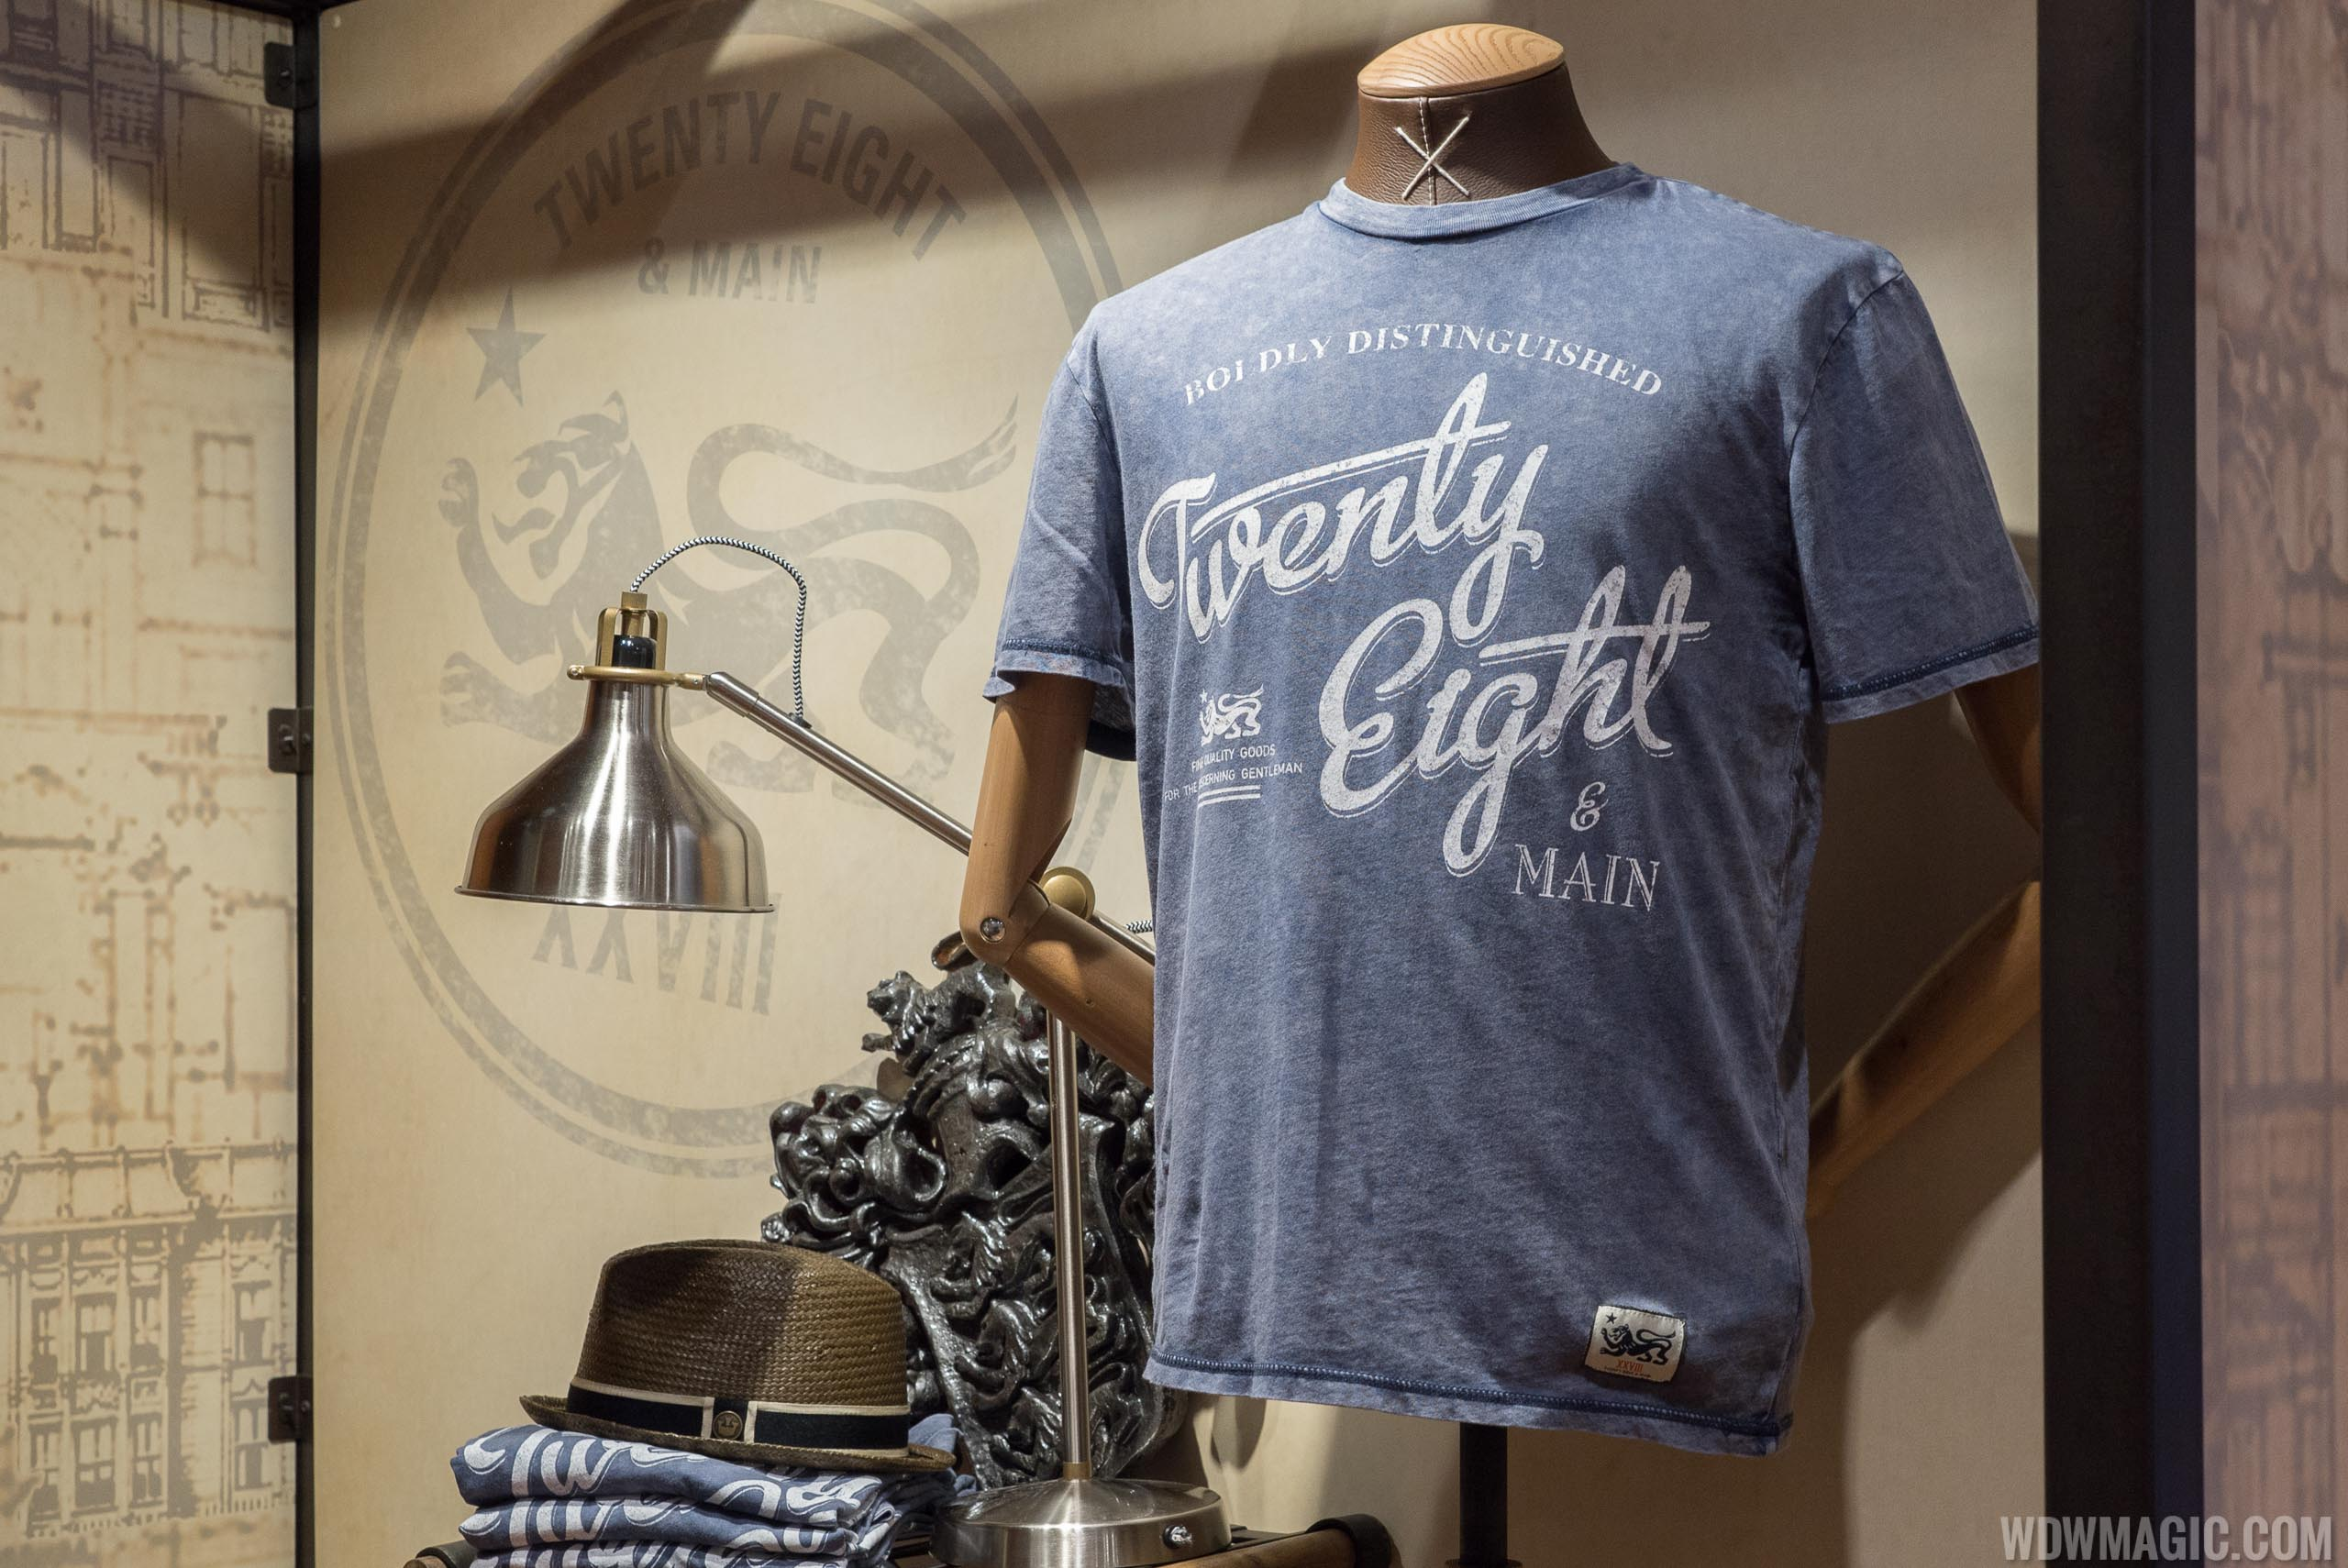 Marketplace Co Op Twenty Eight and Main grand opening